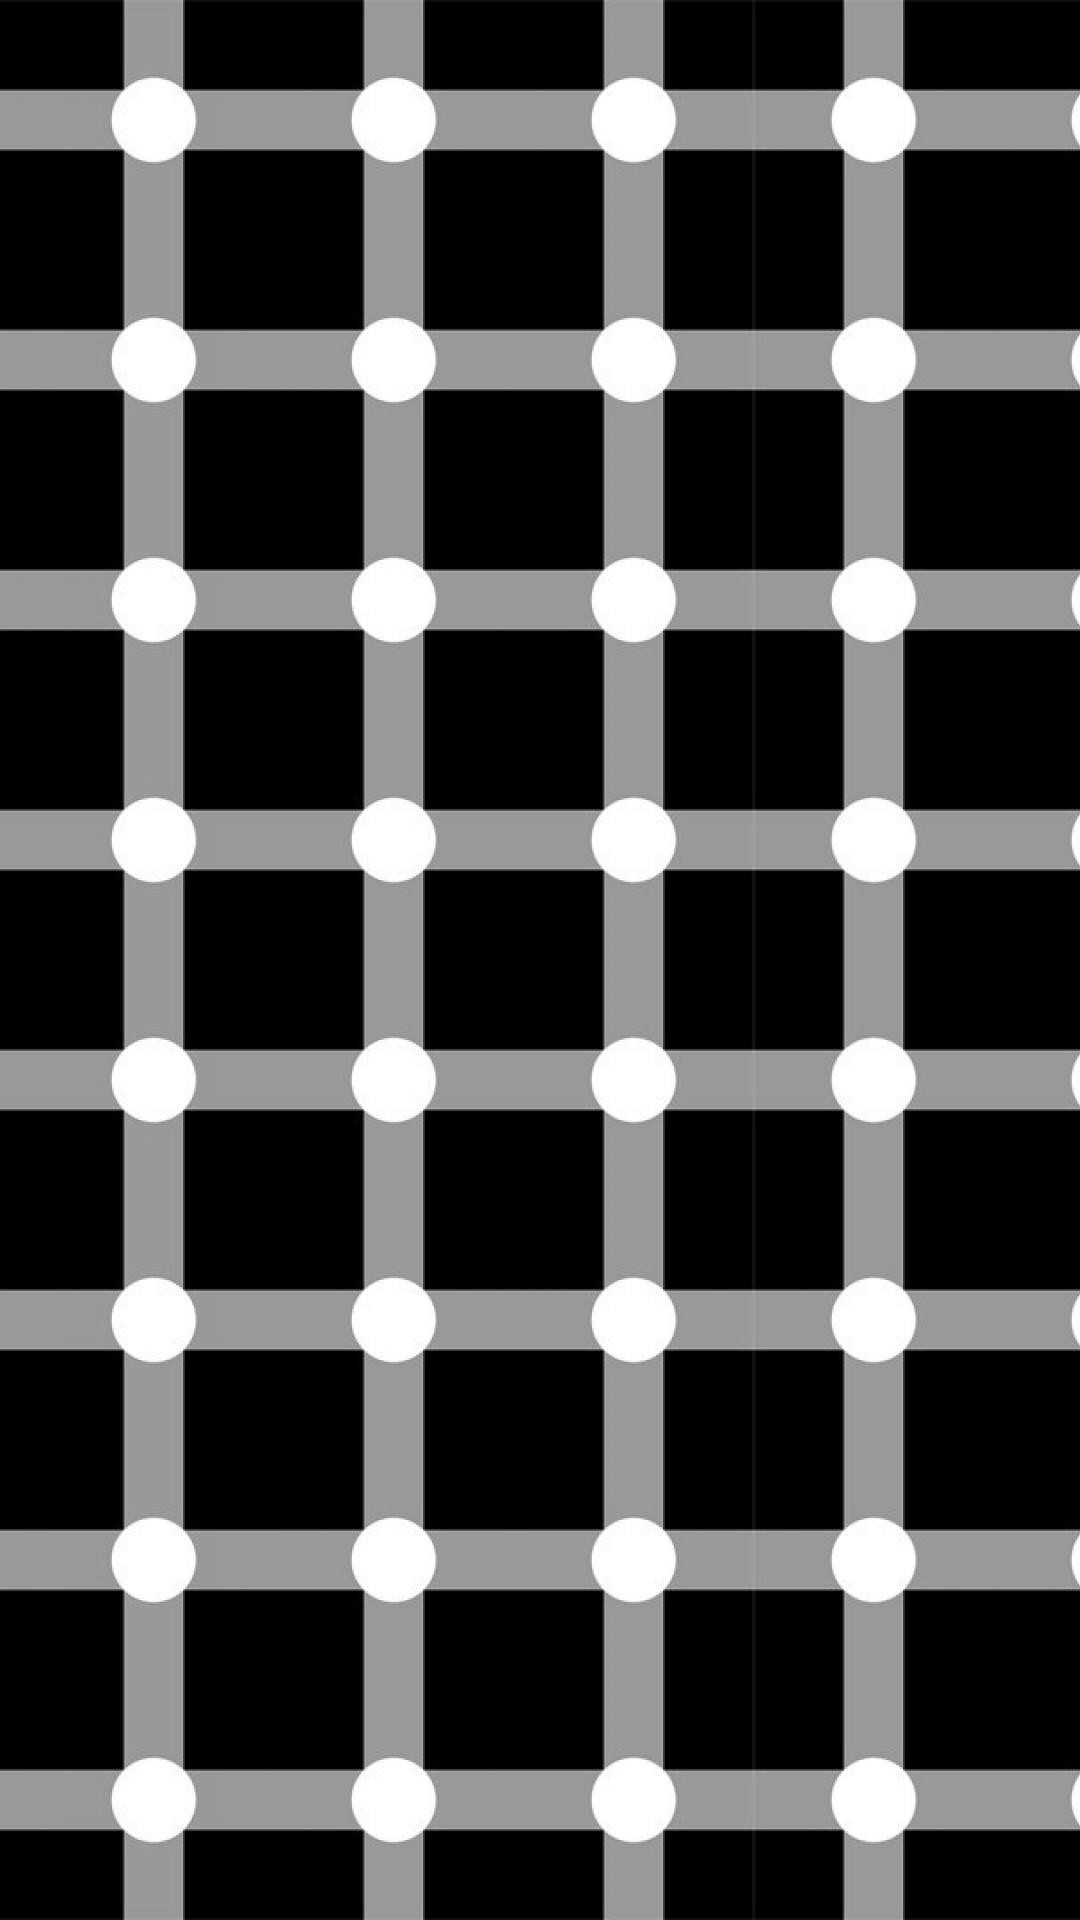 1920x1200 Moving Optical Illusions | wallpaper.